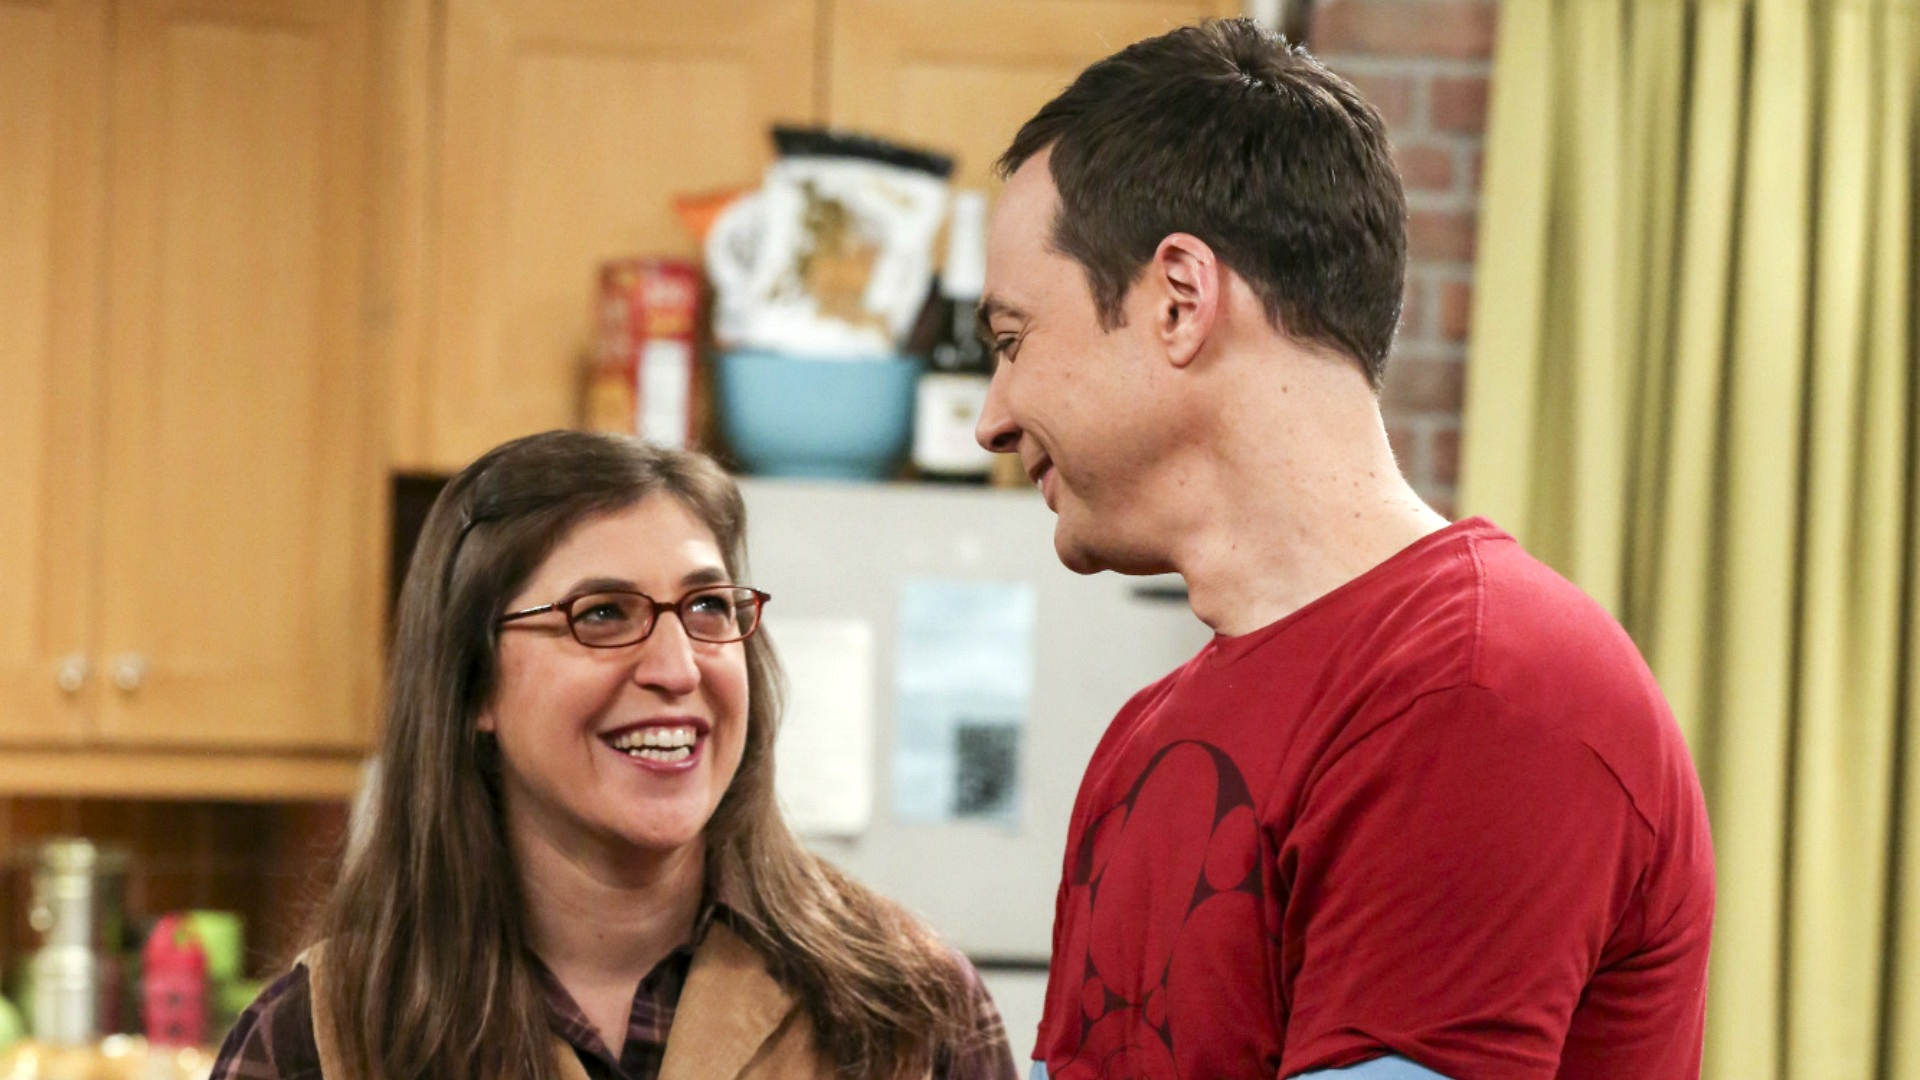 Sheldon and Amy smile as their living situation becomes more permanent.